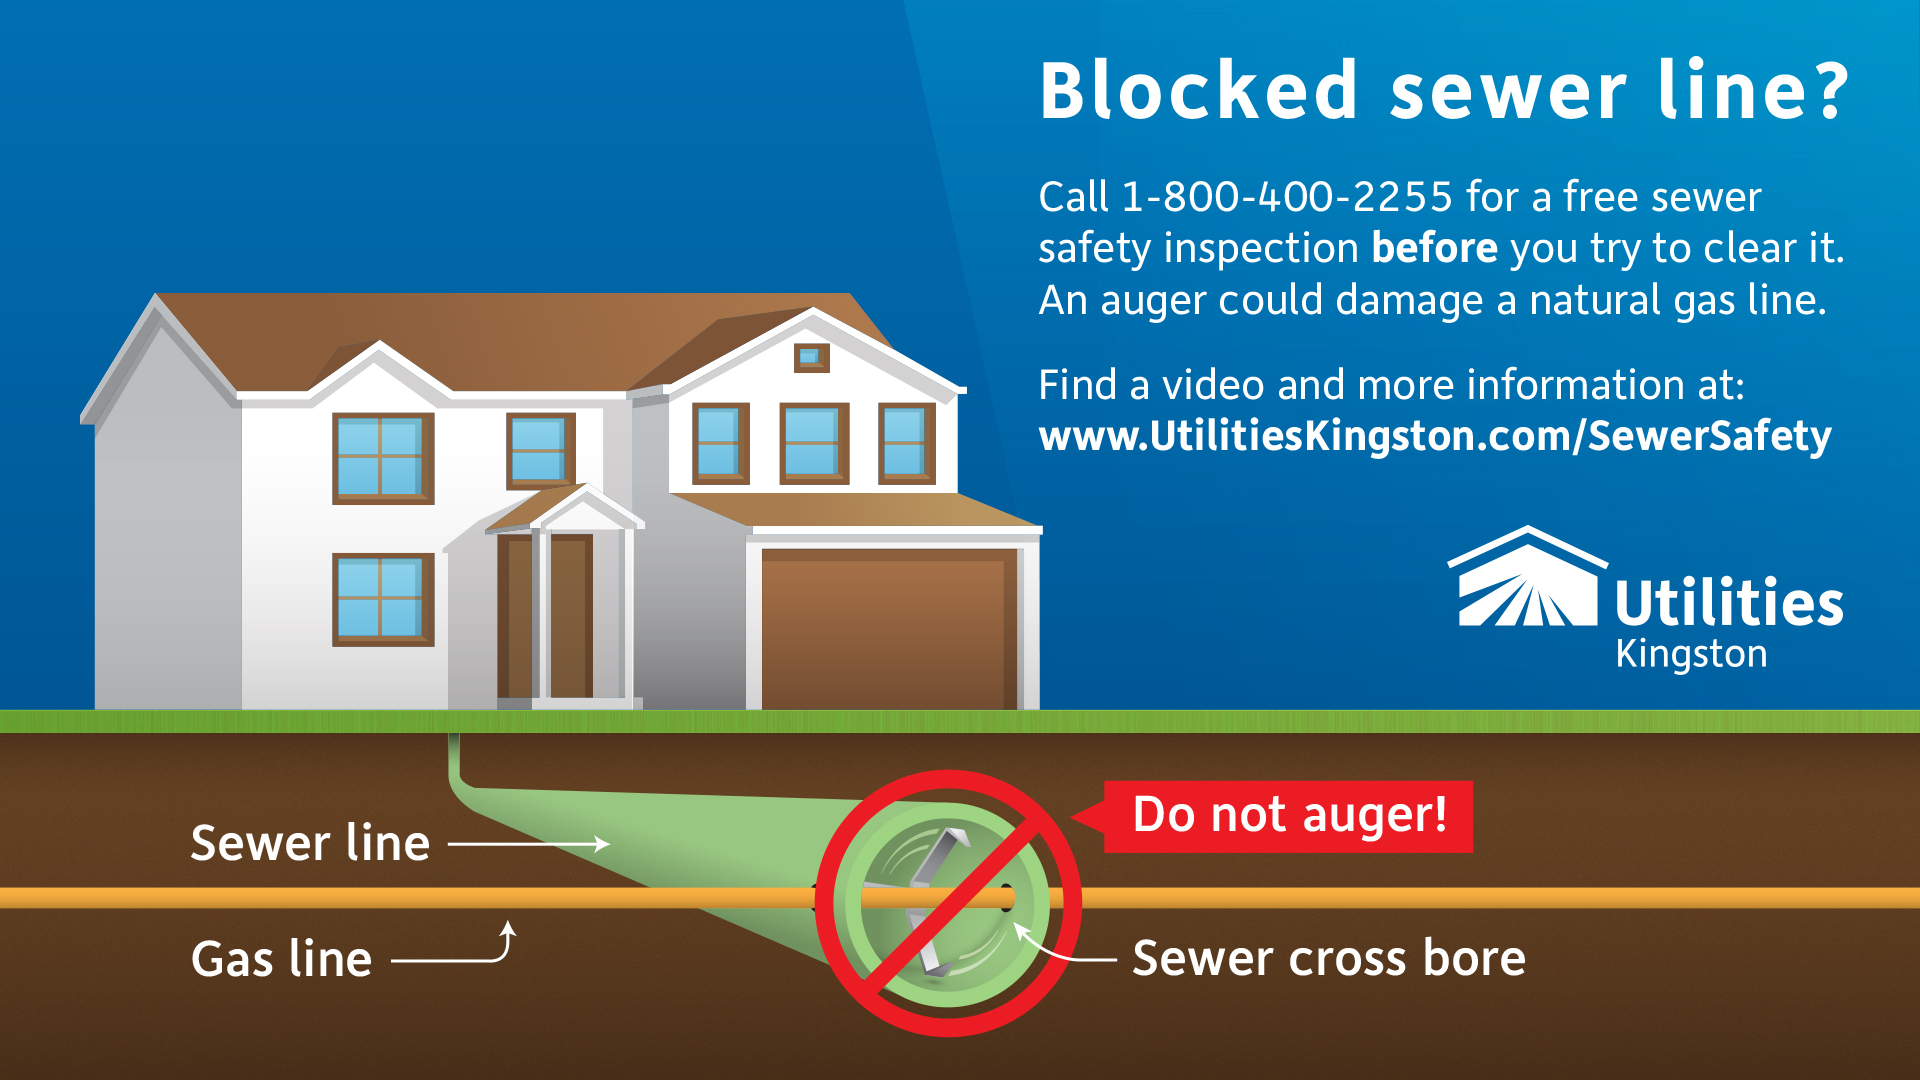 A drawing showing the dangers of augering a blocked sewer line. It encourages home owners to call for a free sewer safety inspection first, at 1-800-400-2255.